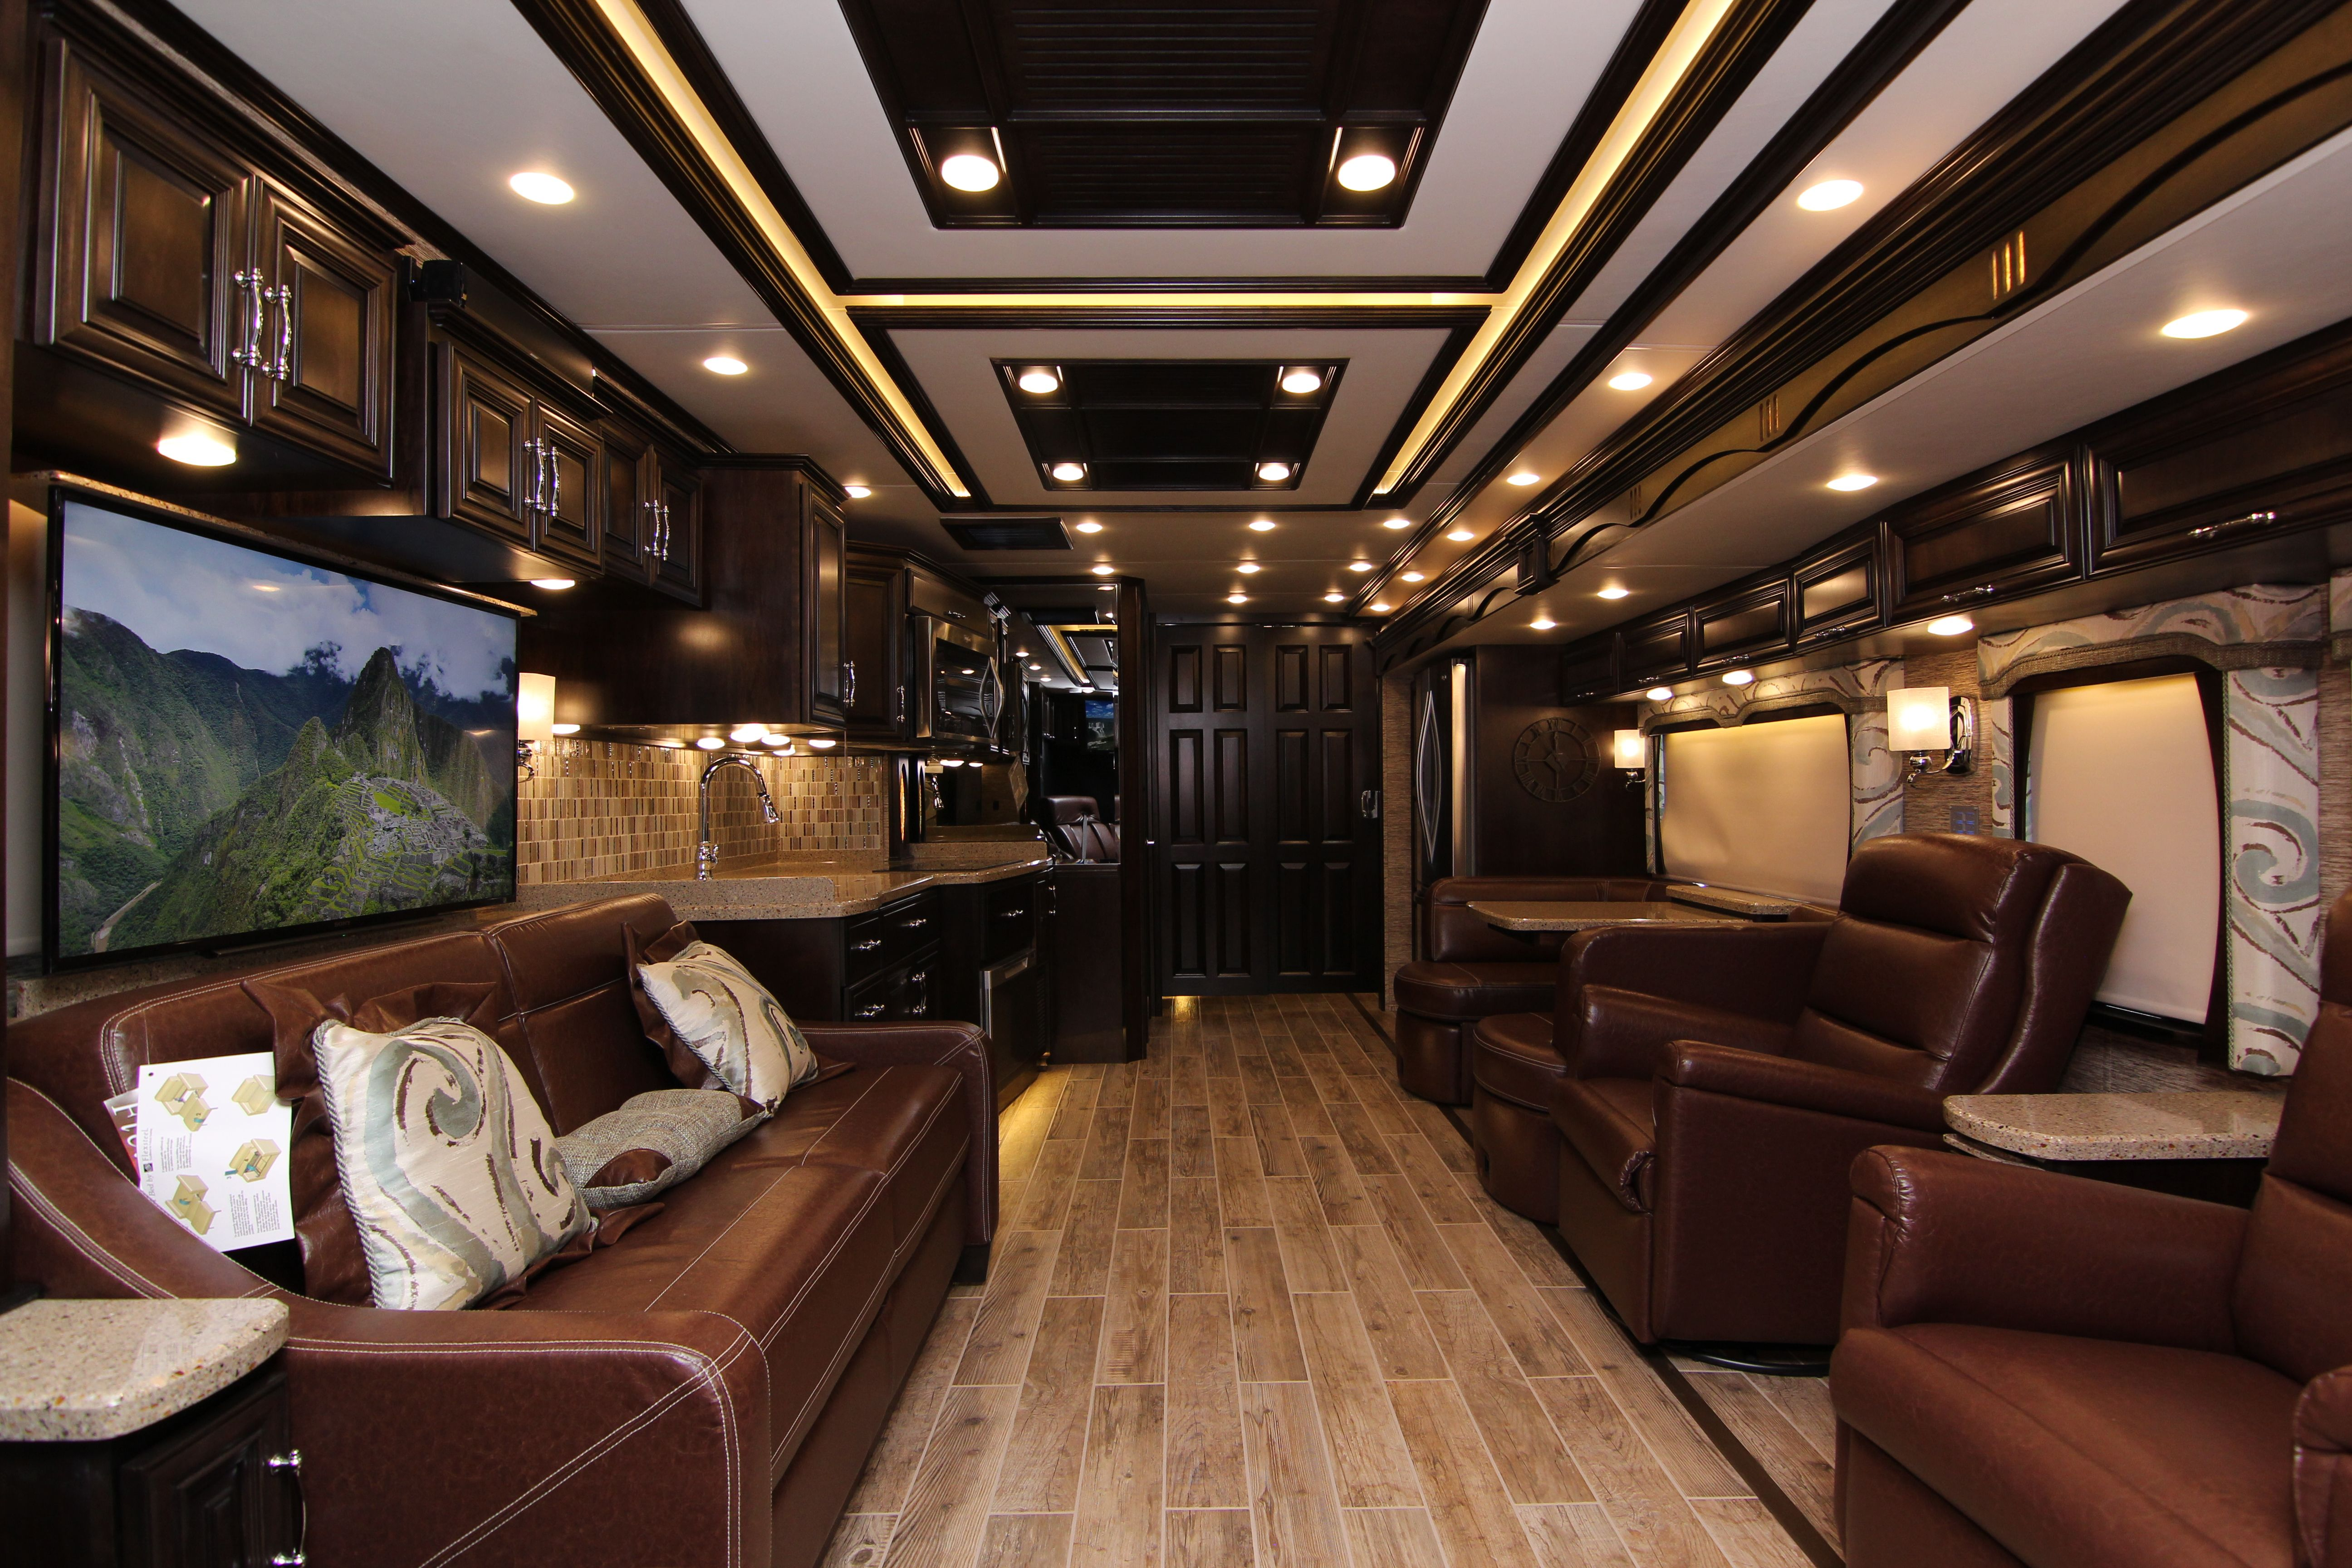 2016 Newmar Mountain Aire Luxury Diesel Pusher Motorcoach North Trail Rv Center Is The World S Largest Newmar Dealer With 2 Rv Dea Luxury Rv Luxury My House